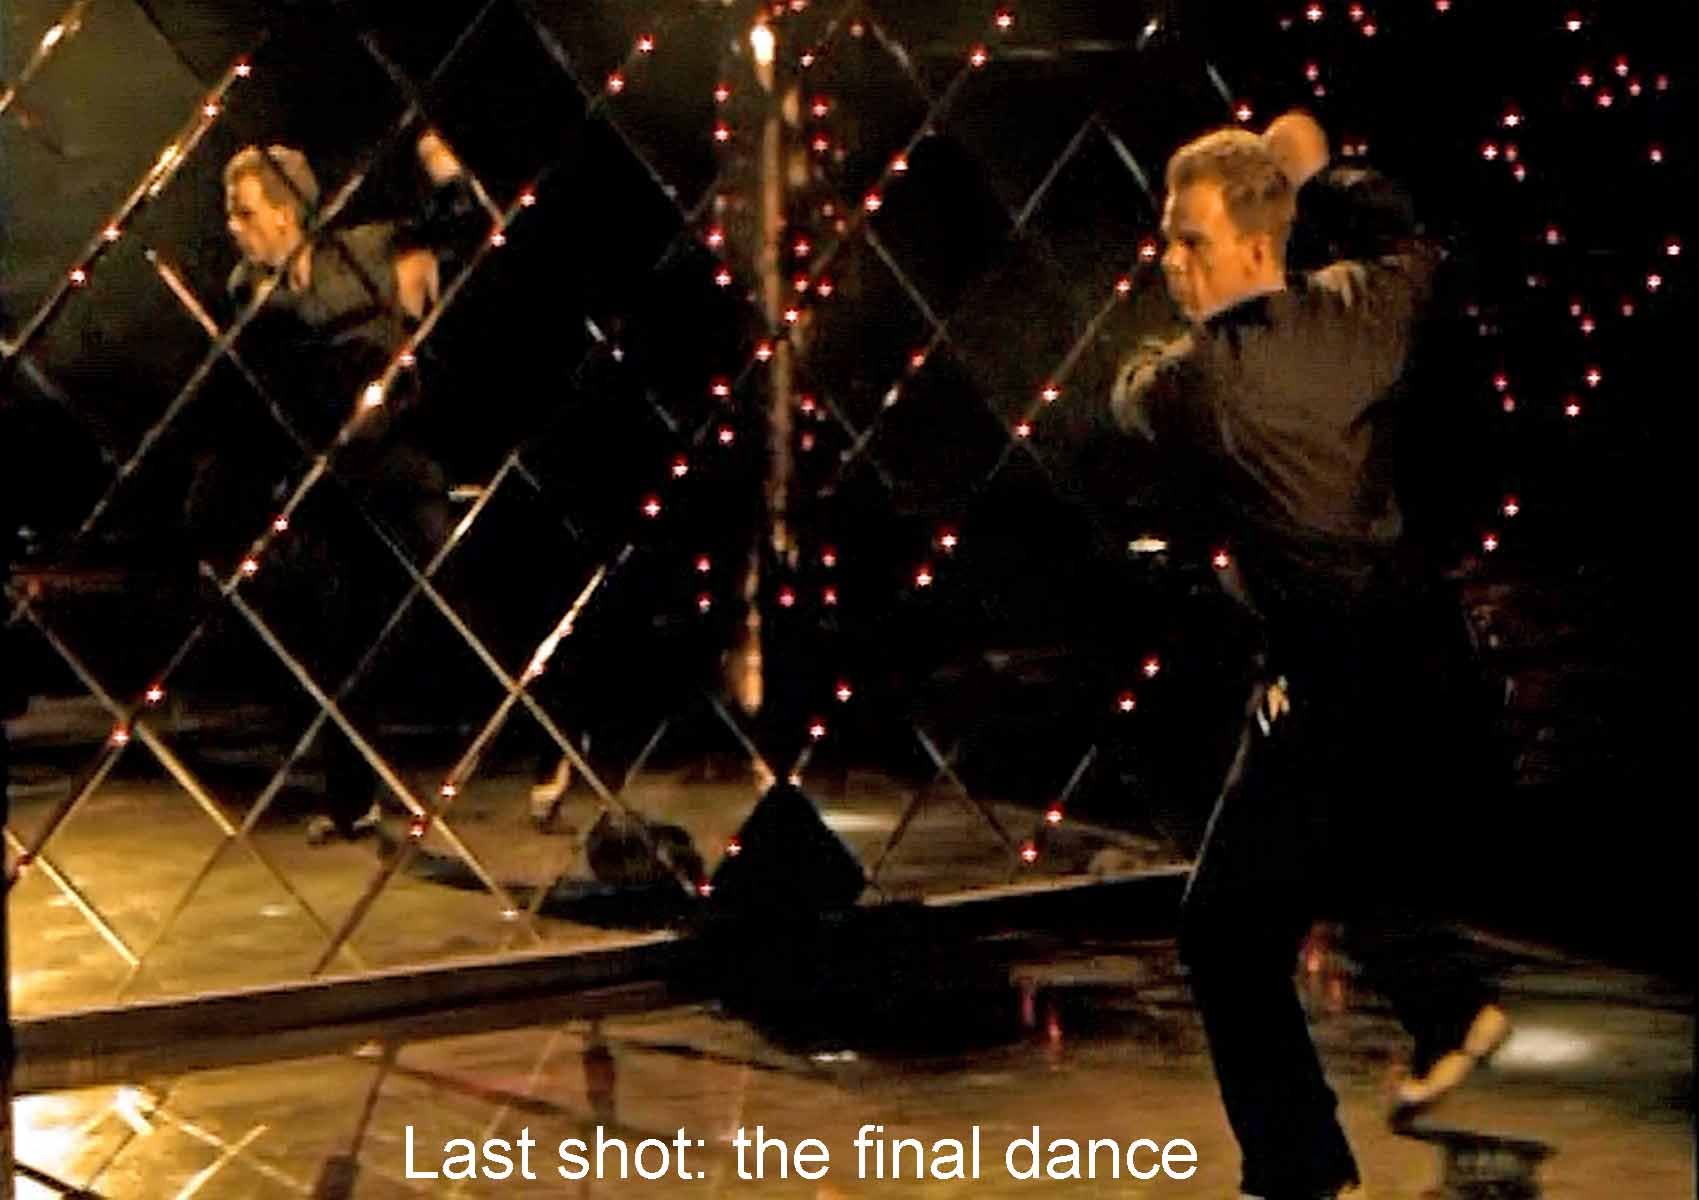 Last shot: the final dance